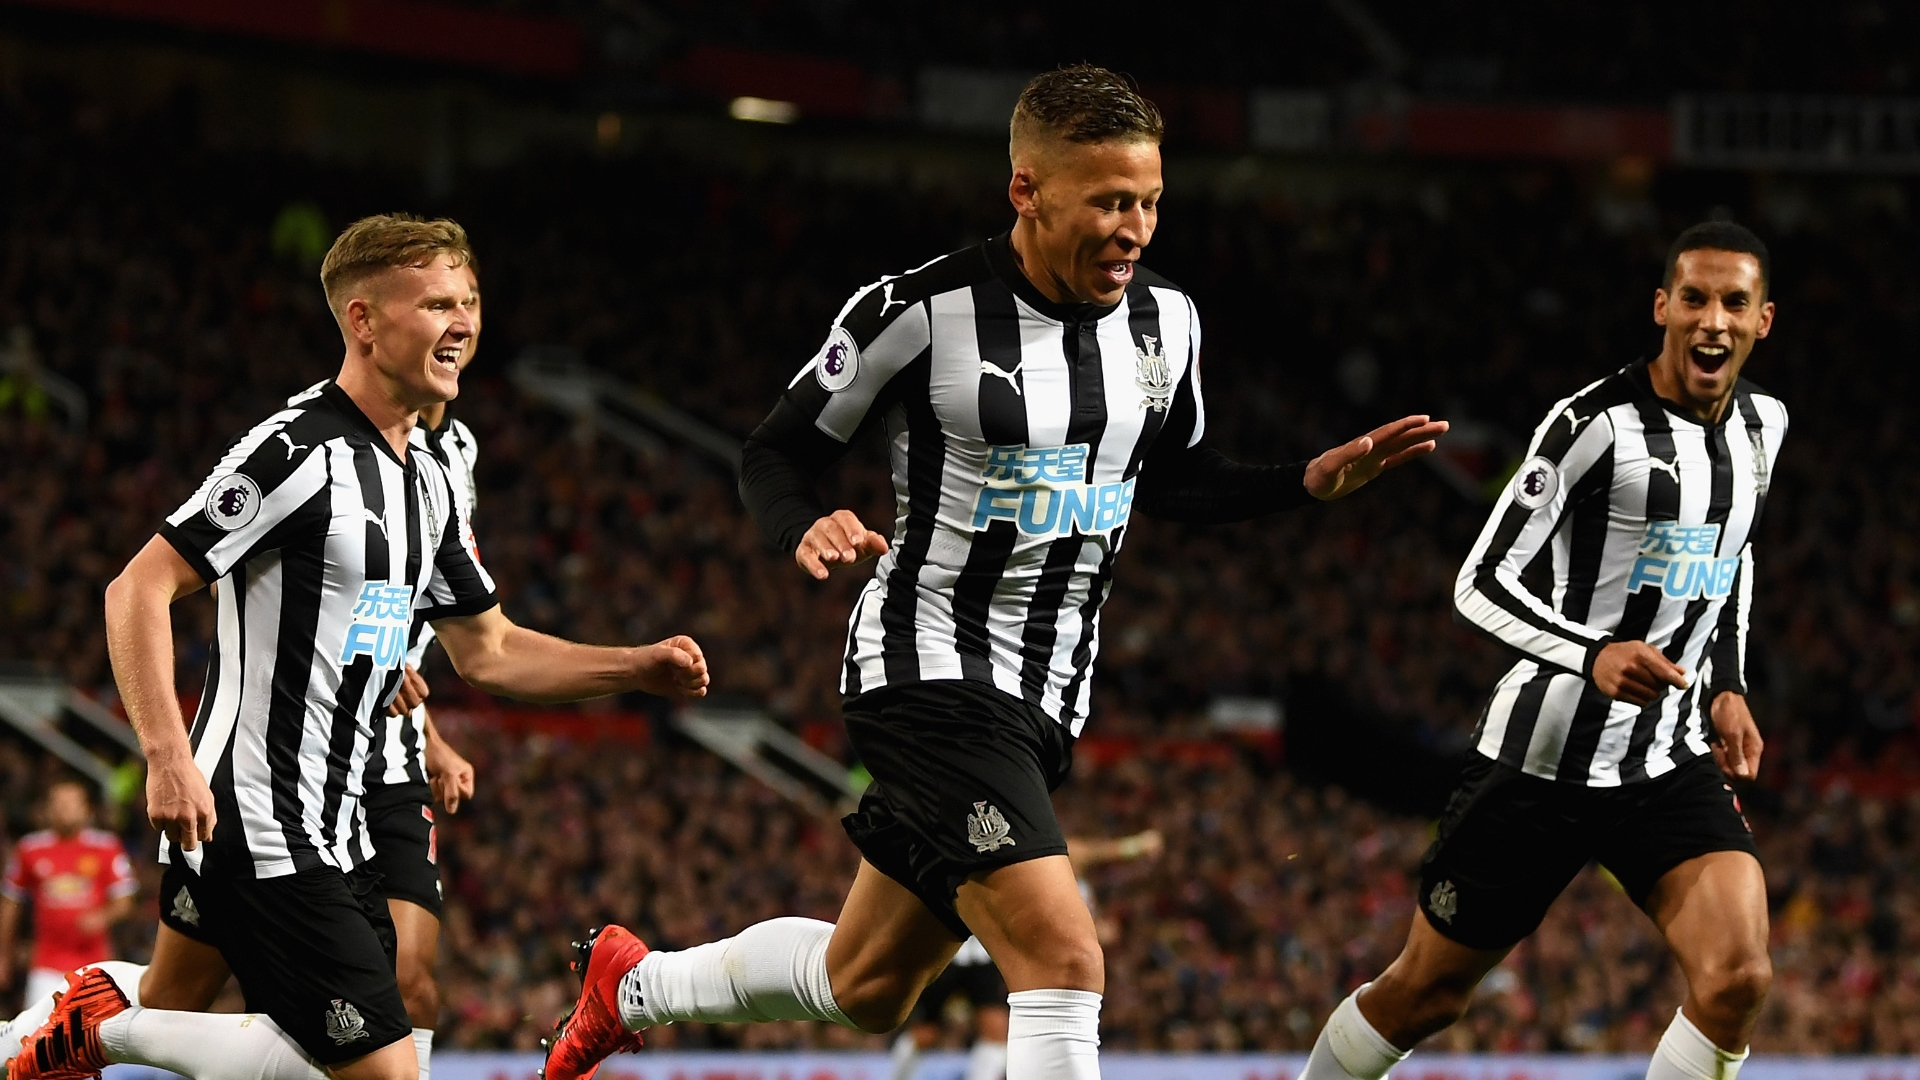 Dwight Gayle, Newcastle